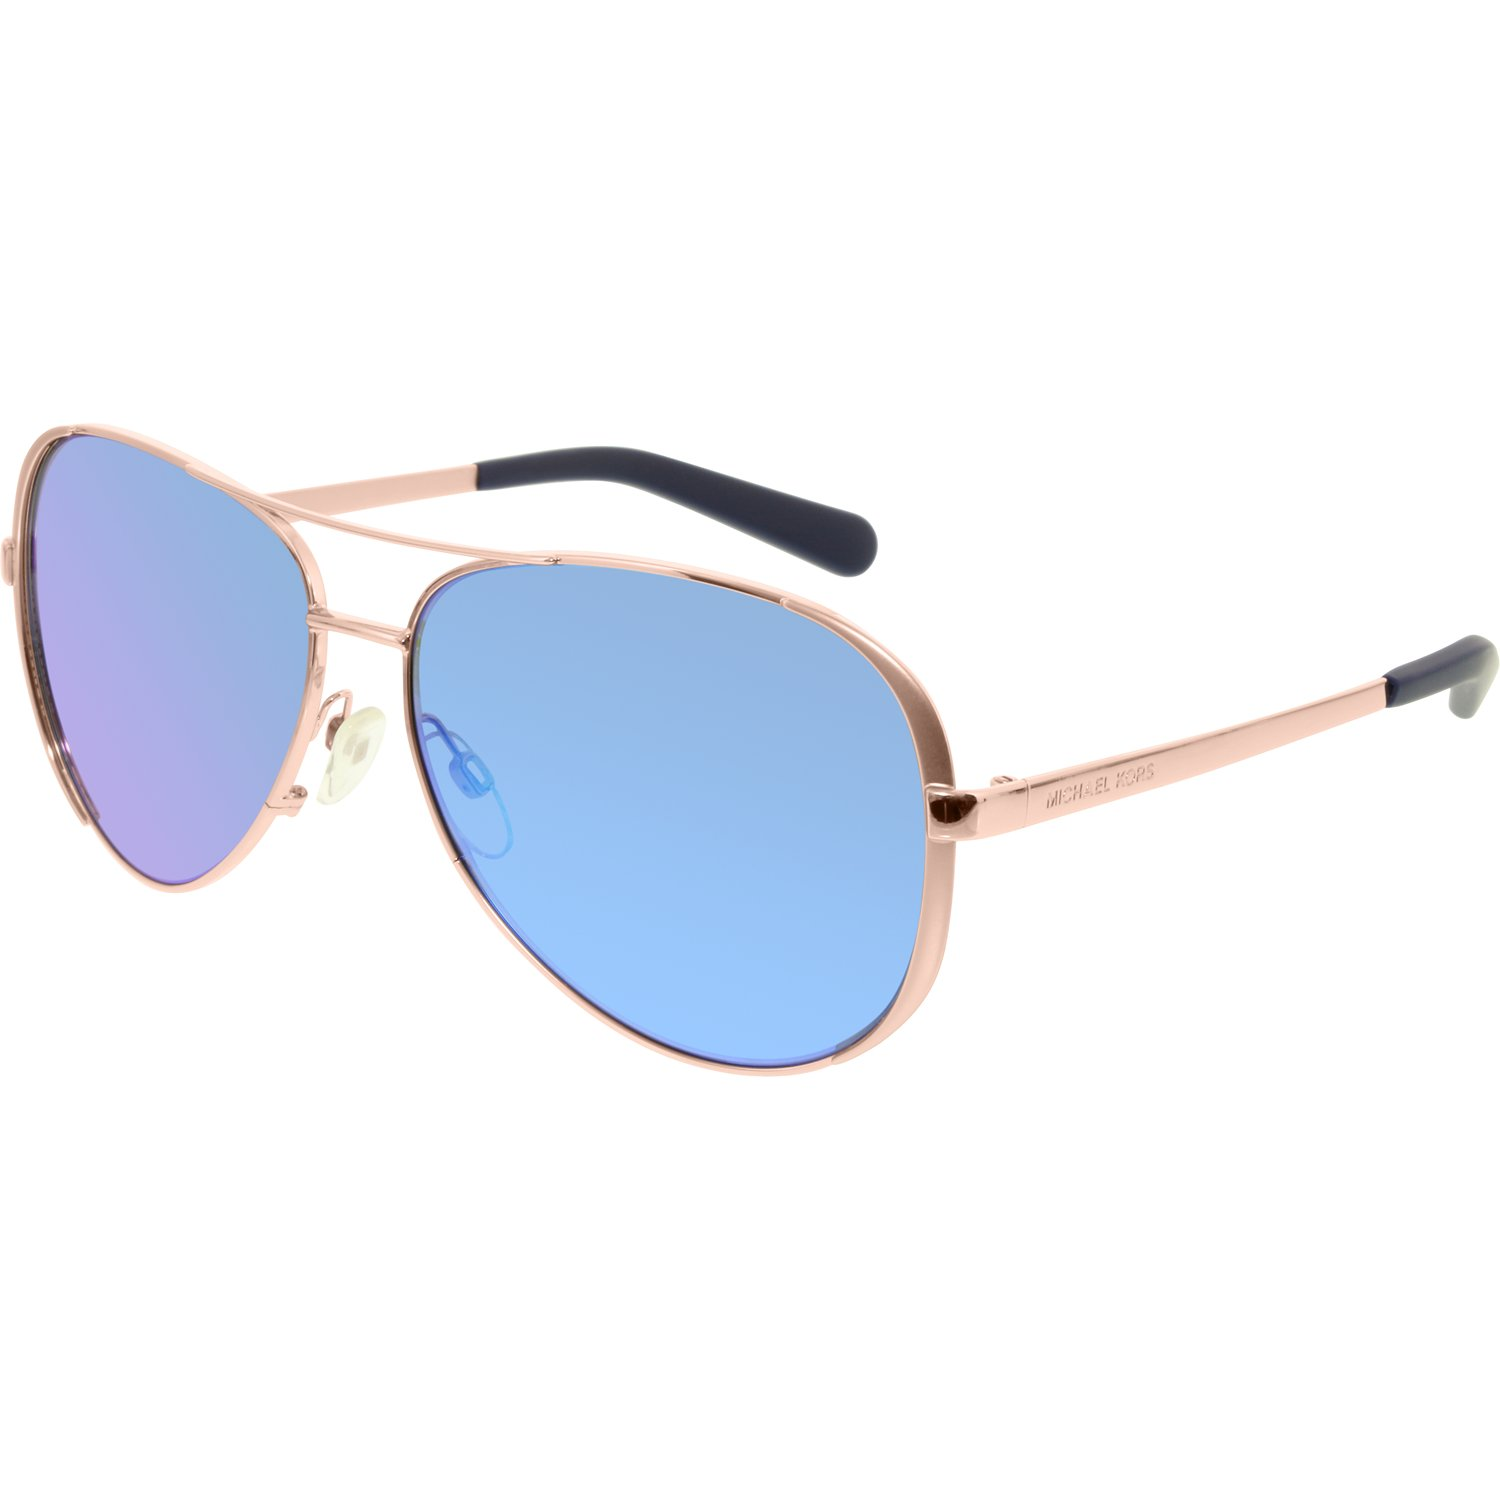 0fd75de8e7 Michael Kors Women s Gradient Chelsea MK5004-100325-59 Rose Gold Aviator  Sunglasses